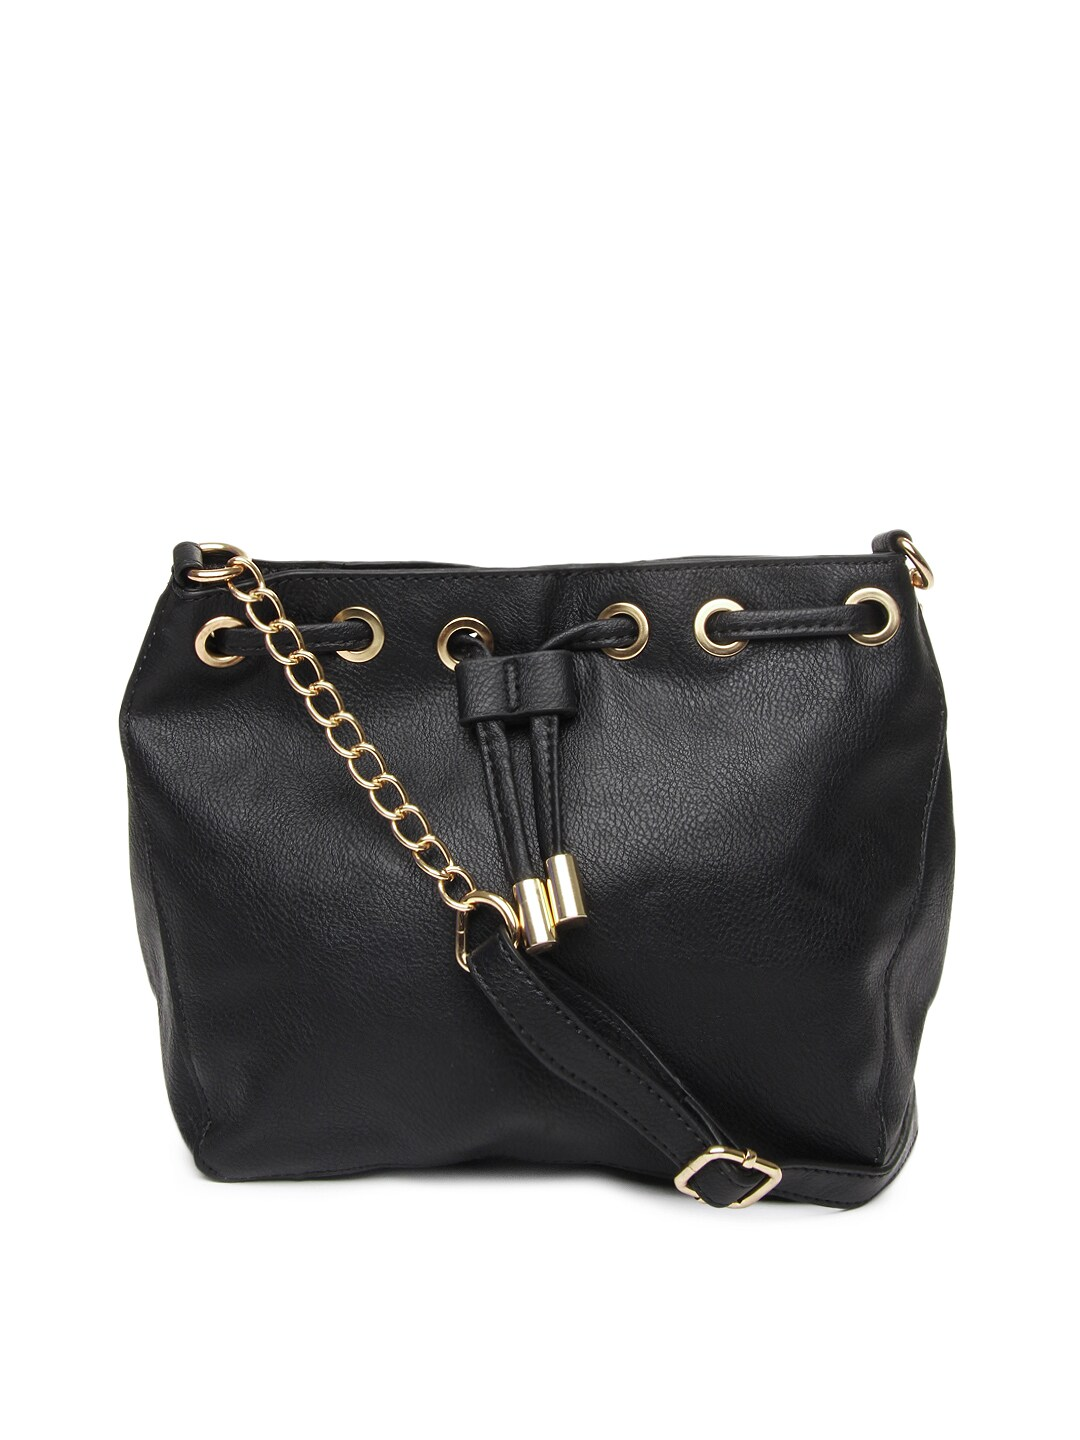 1cf97d952a93 Buy Accessorize Black Sling Bag 1278590 for online in india on .